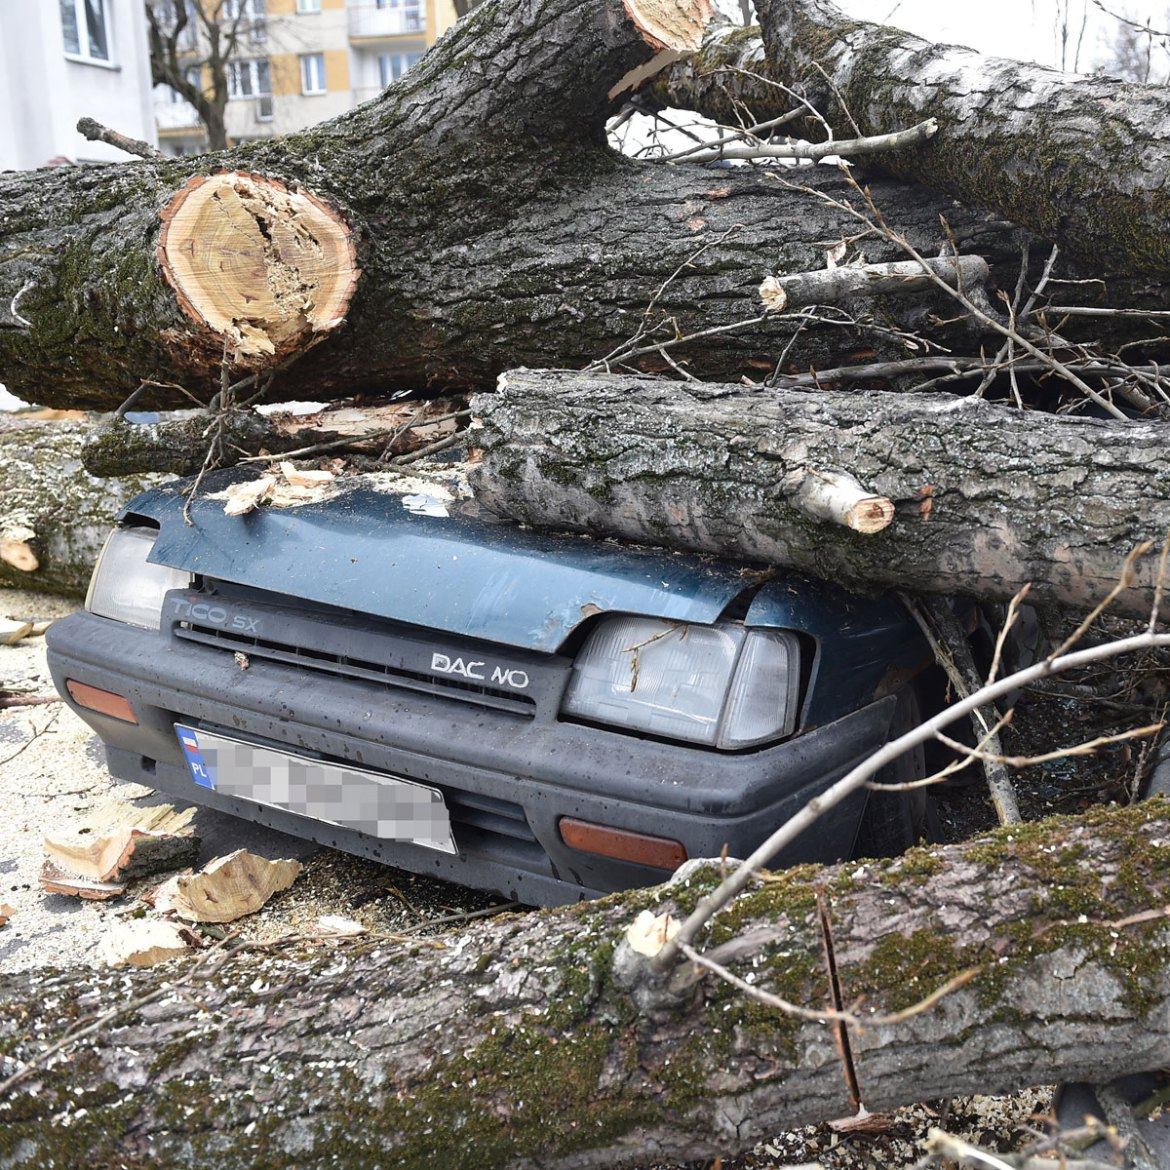 A car destroyed by a fallen tree in Krakow, Poland, as Storm Doris continues her destructive path through northern Europe. [Jacek Bednarcyk/EPA]